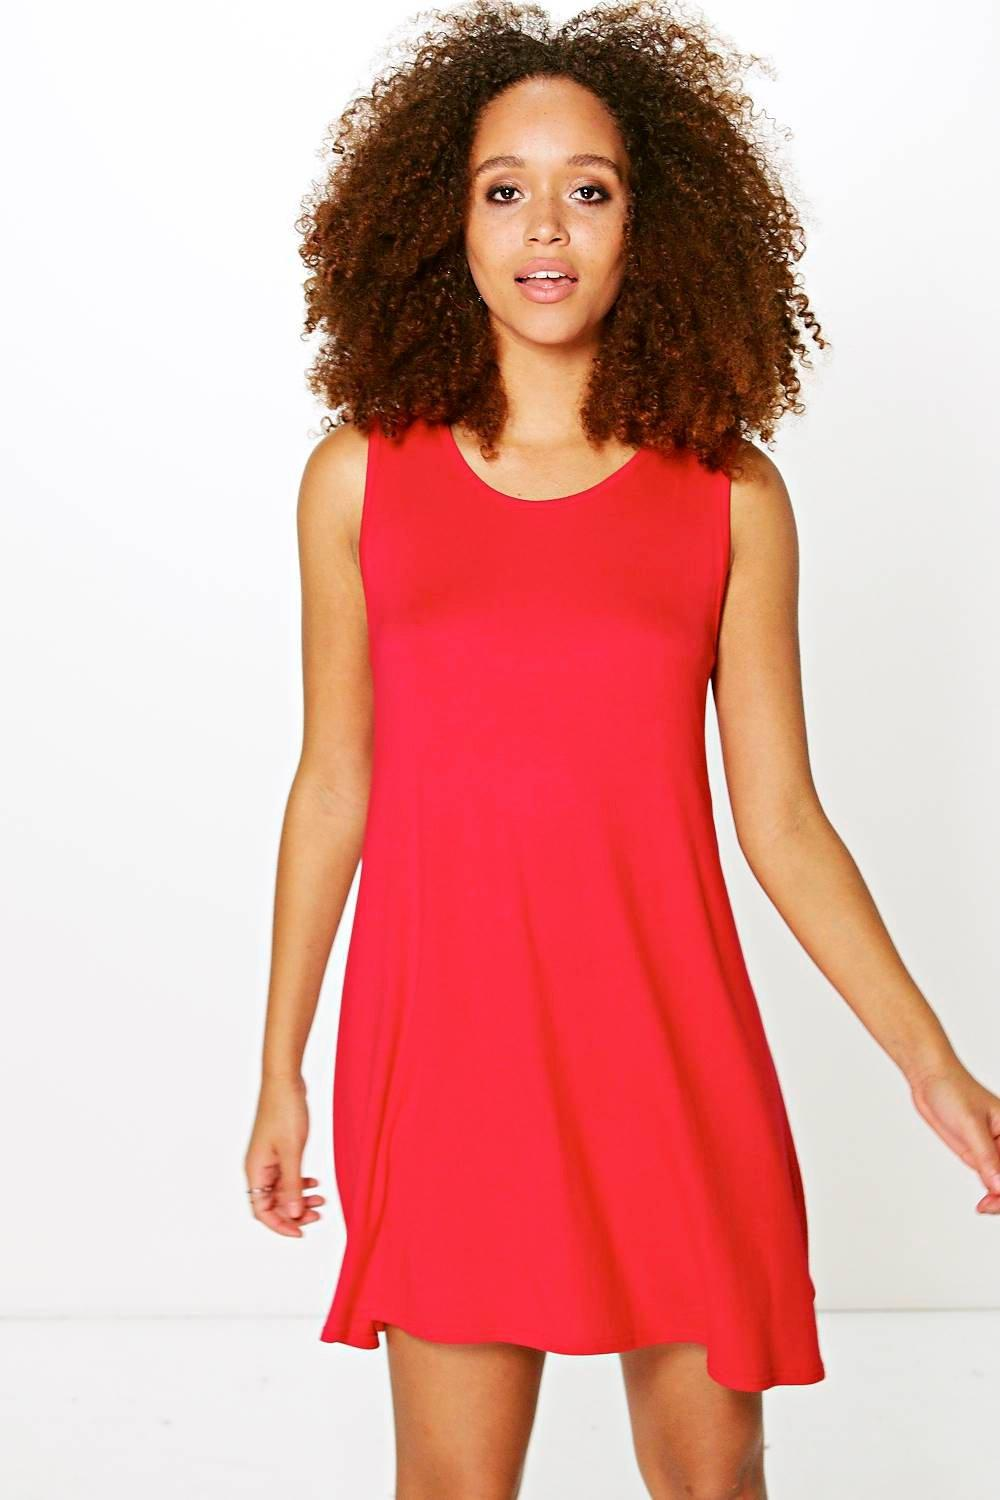 Ellie Basic Scoop Neck Sleeveless Swing Dress